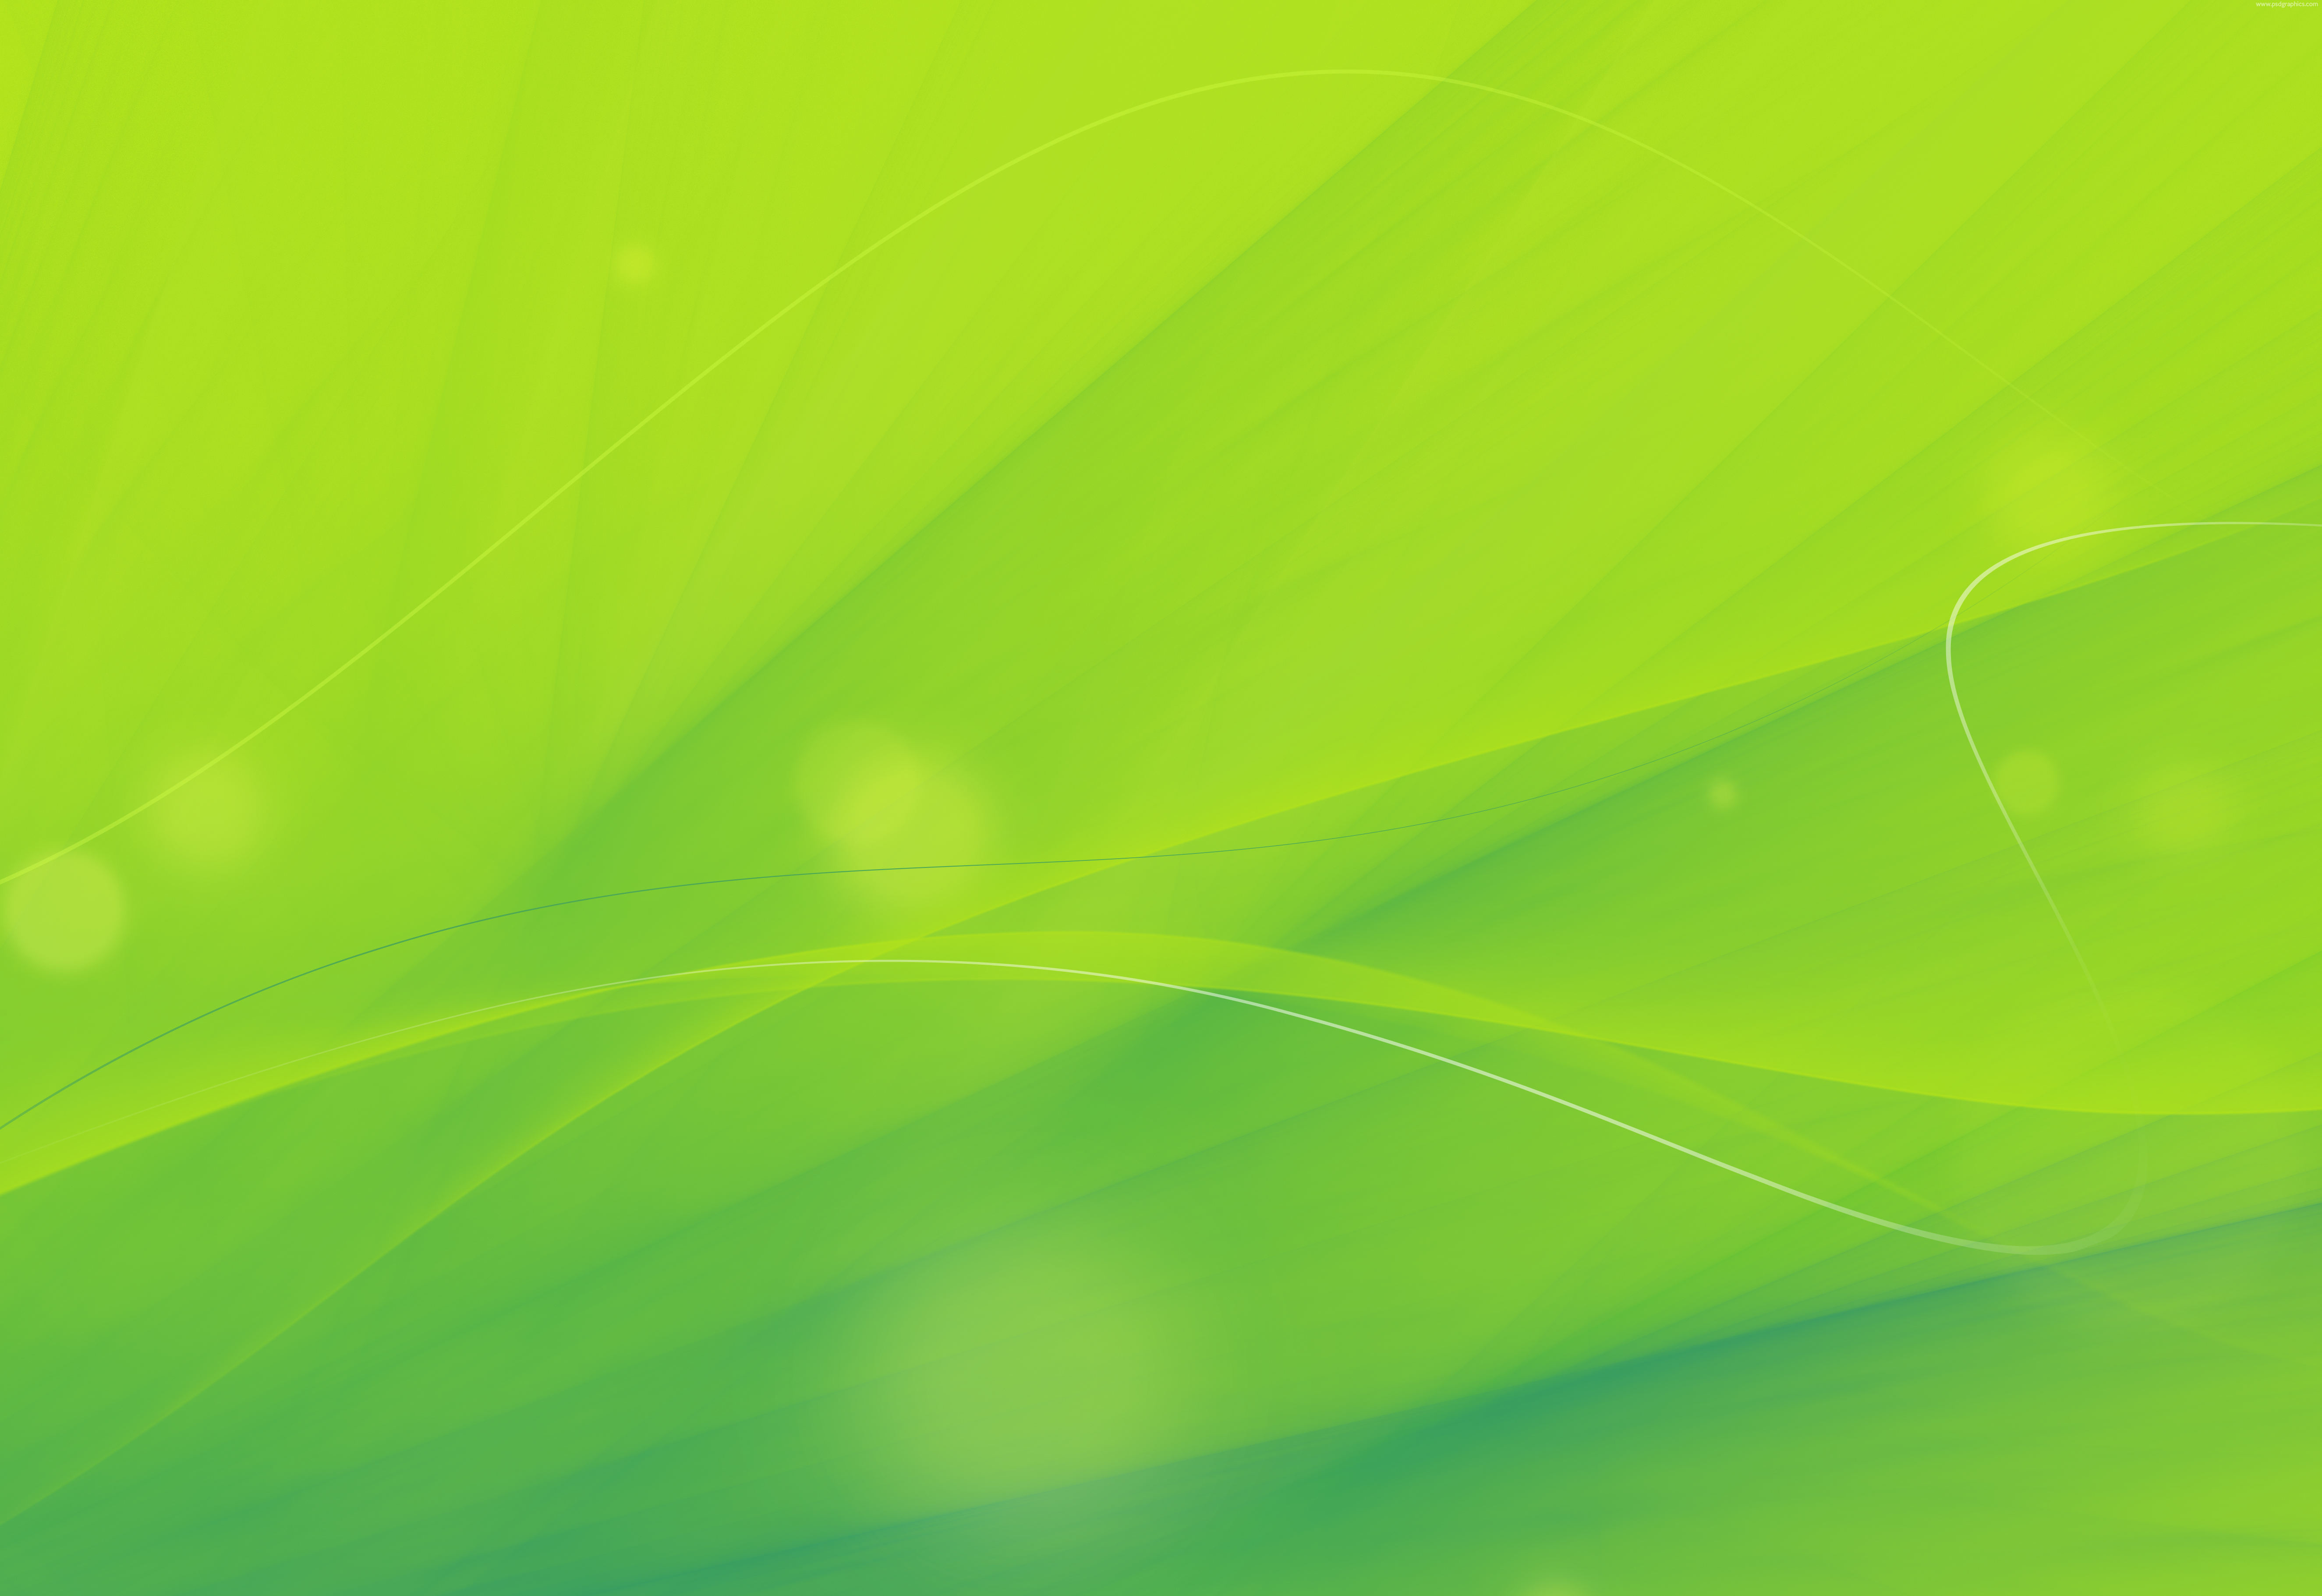 Lime green background | PSDGraphics